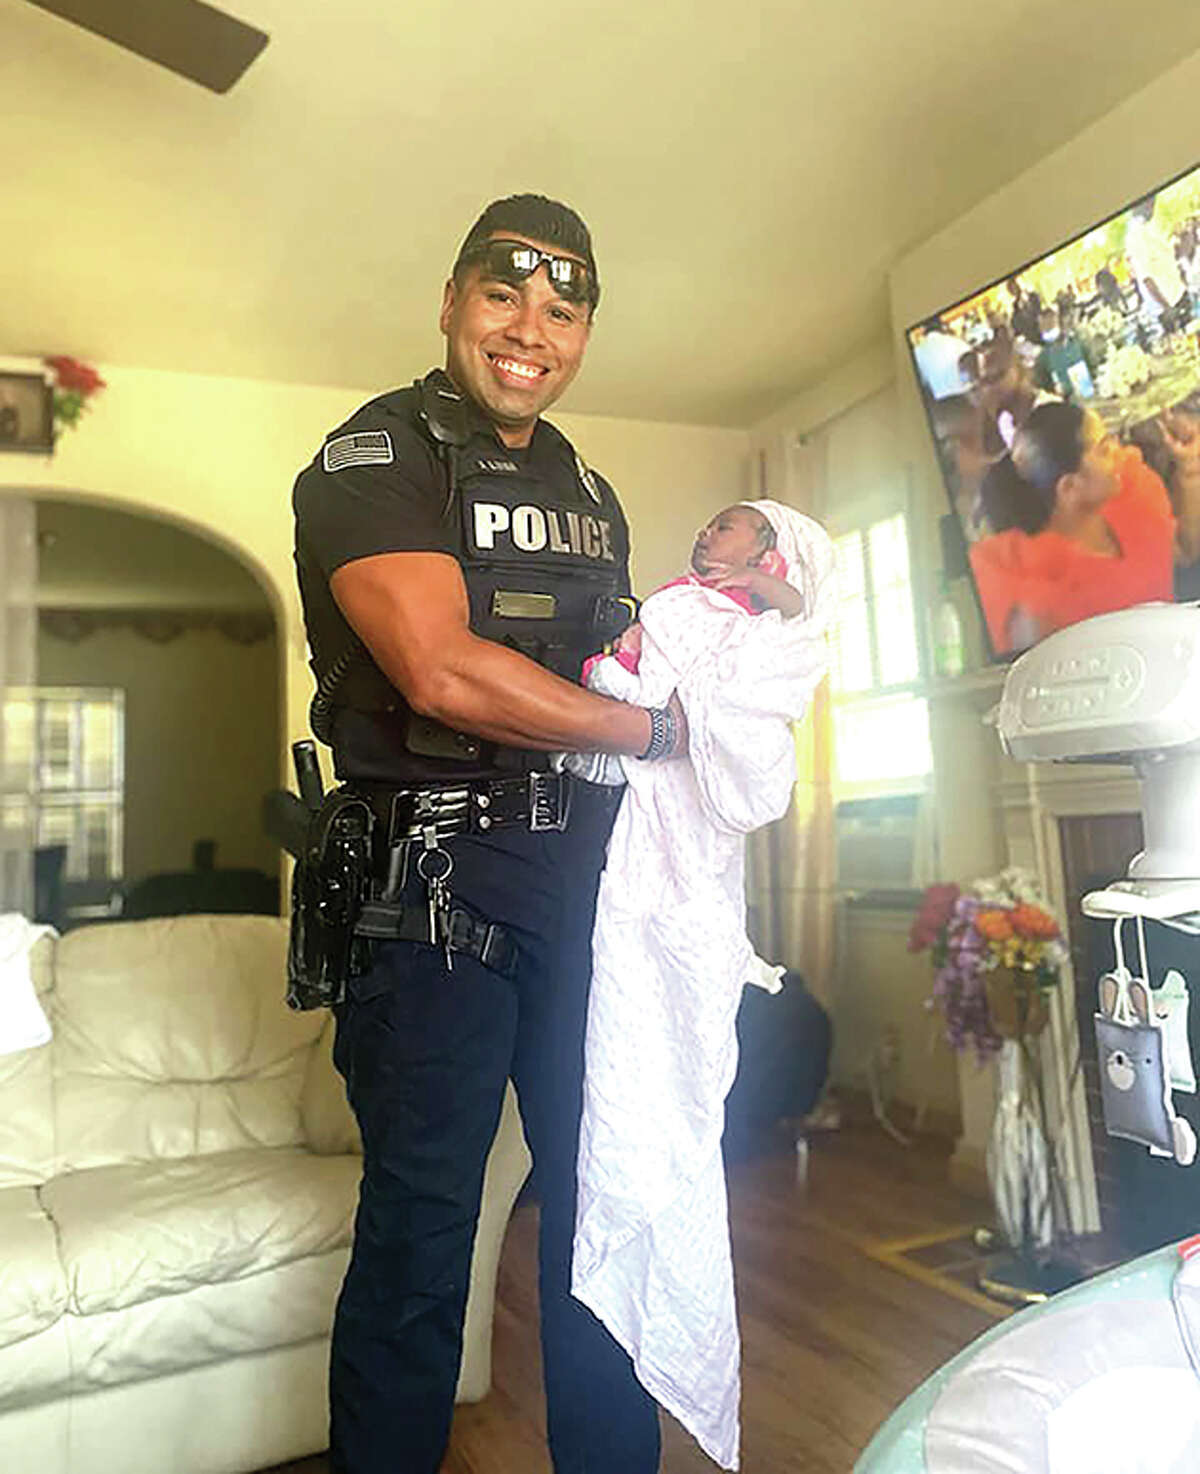 Joey Luna, a Beardstown police officer, holds a new baby he helped deliver earlier this month.